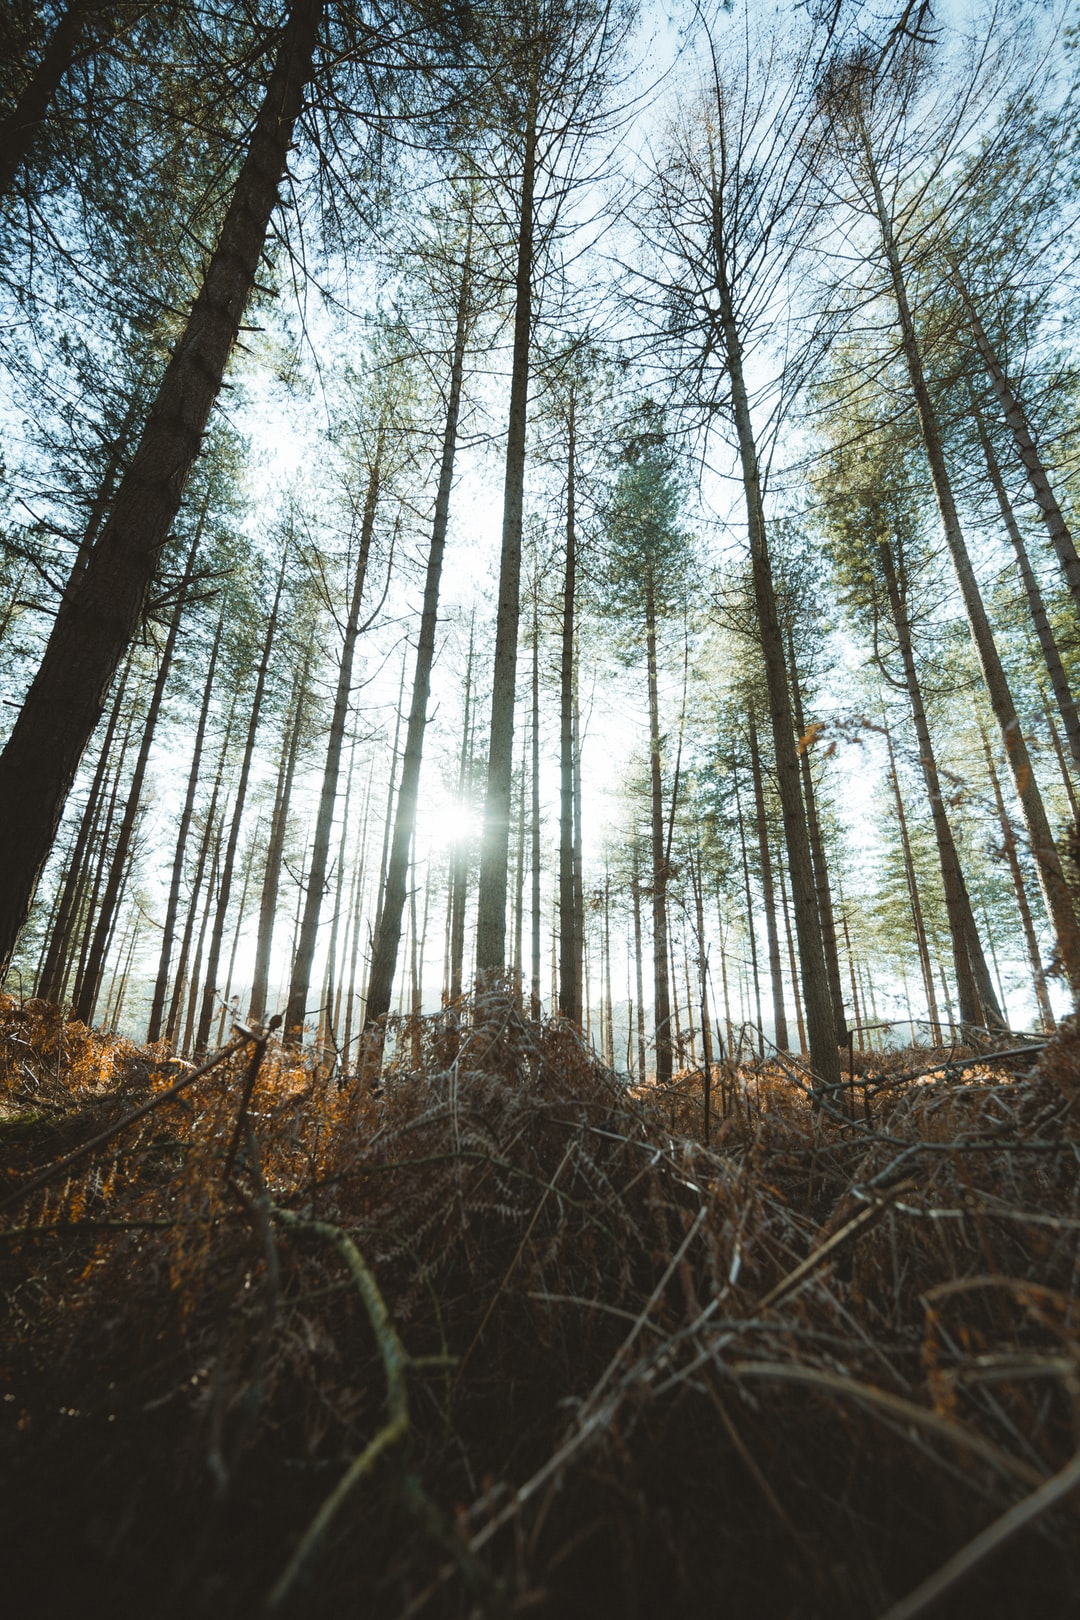 Wide angle forest scene